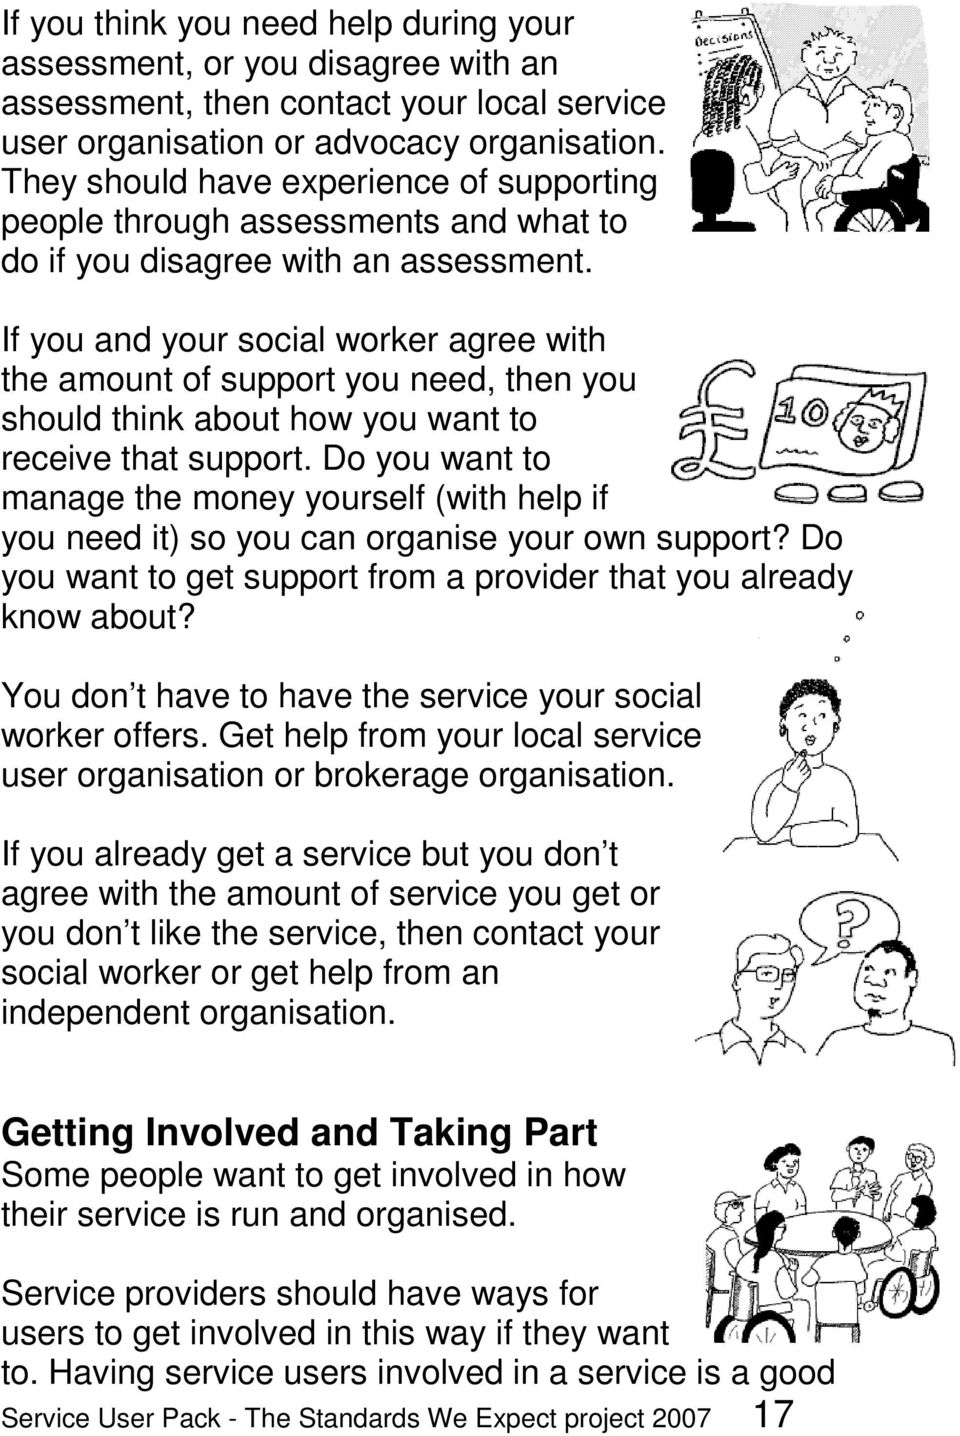 If you and your social worker agree with the amount of support you need, then you should think about how you want to receive that support.